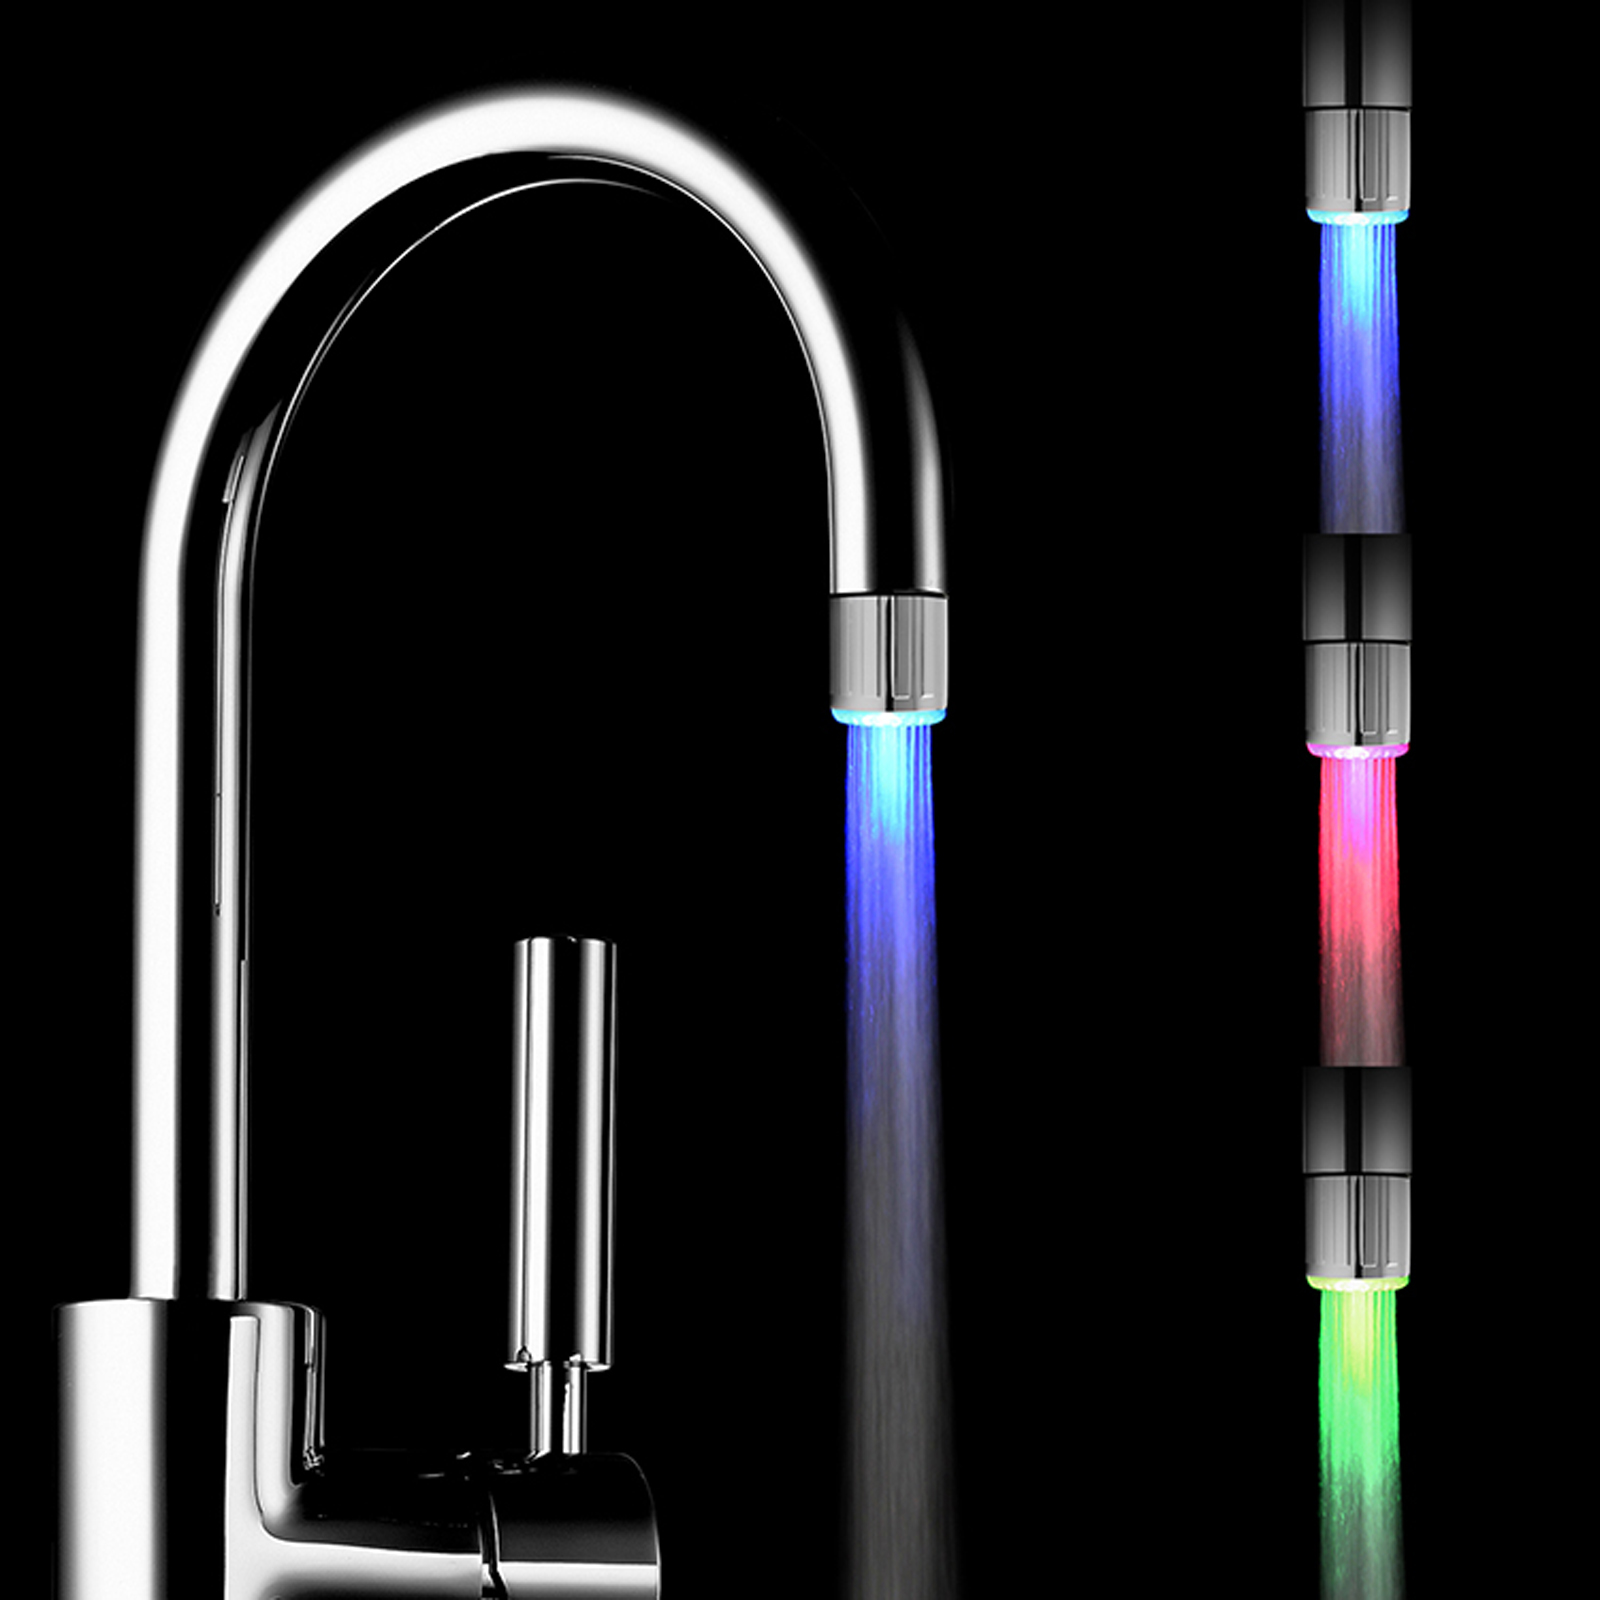 High Quality LED Water Faucet Stream Light 7 Colors Changing Glow Shower Tap Head Kitchen Pressure Sensor Kitchen Accessory